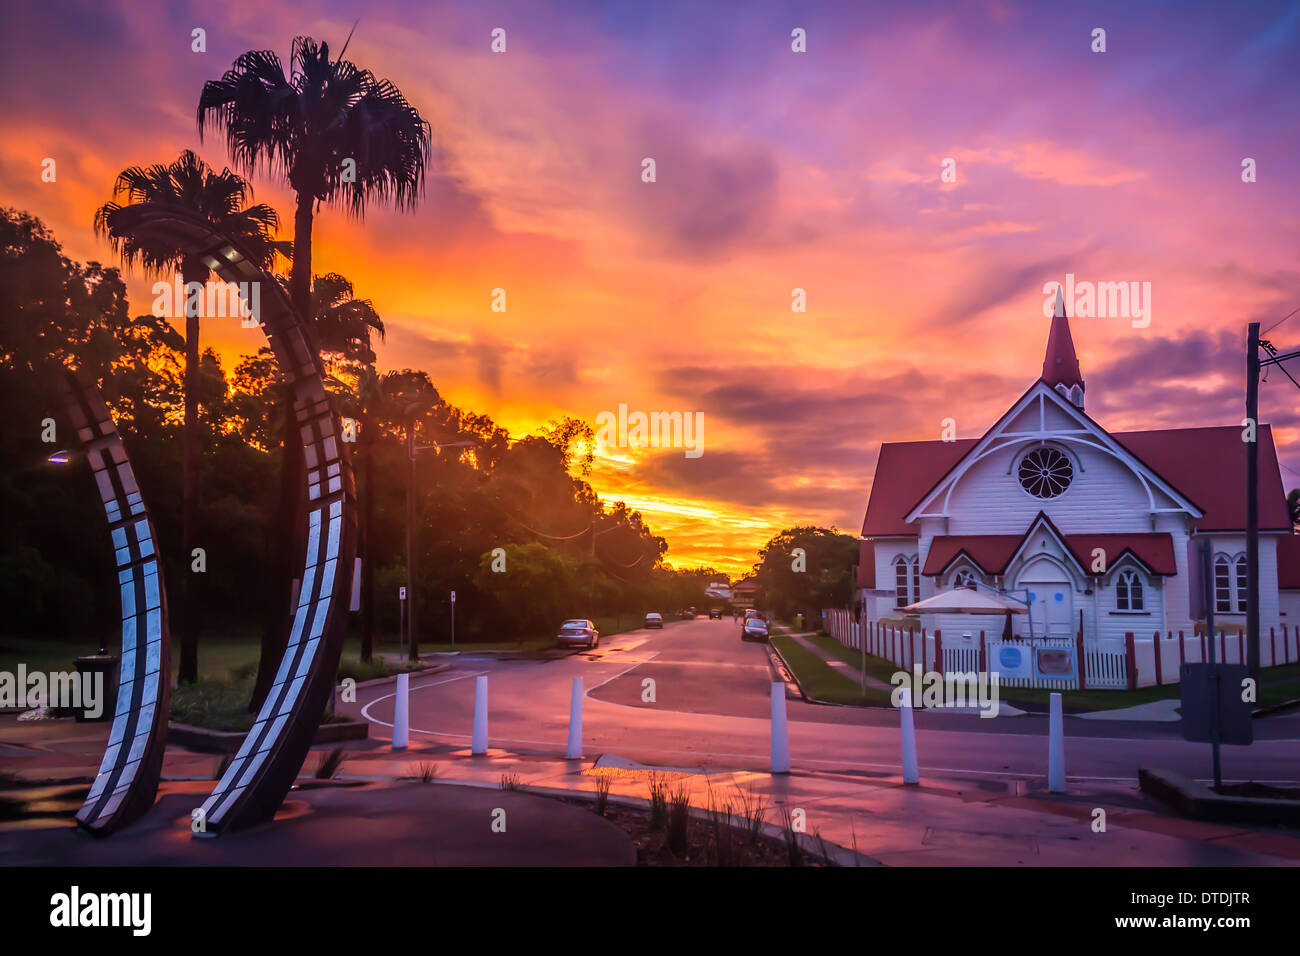 Dramatic sunset over Cliff St with the old Baptist Church at Sandgate in Brisbane. - Stock Image